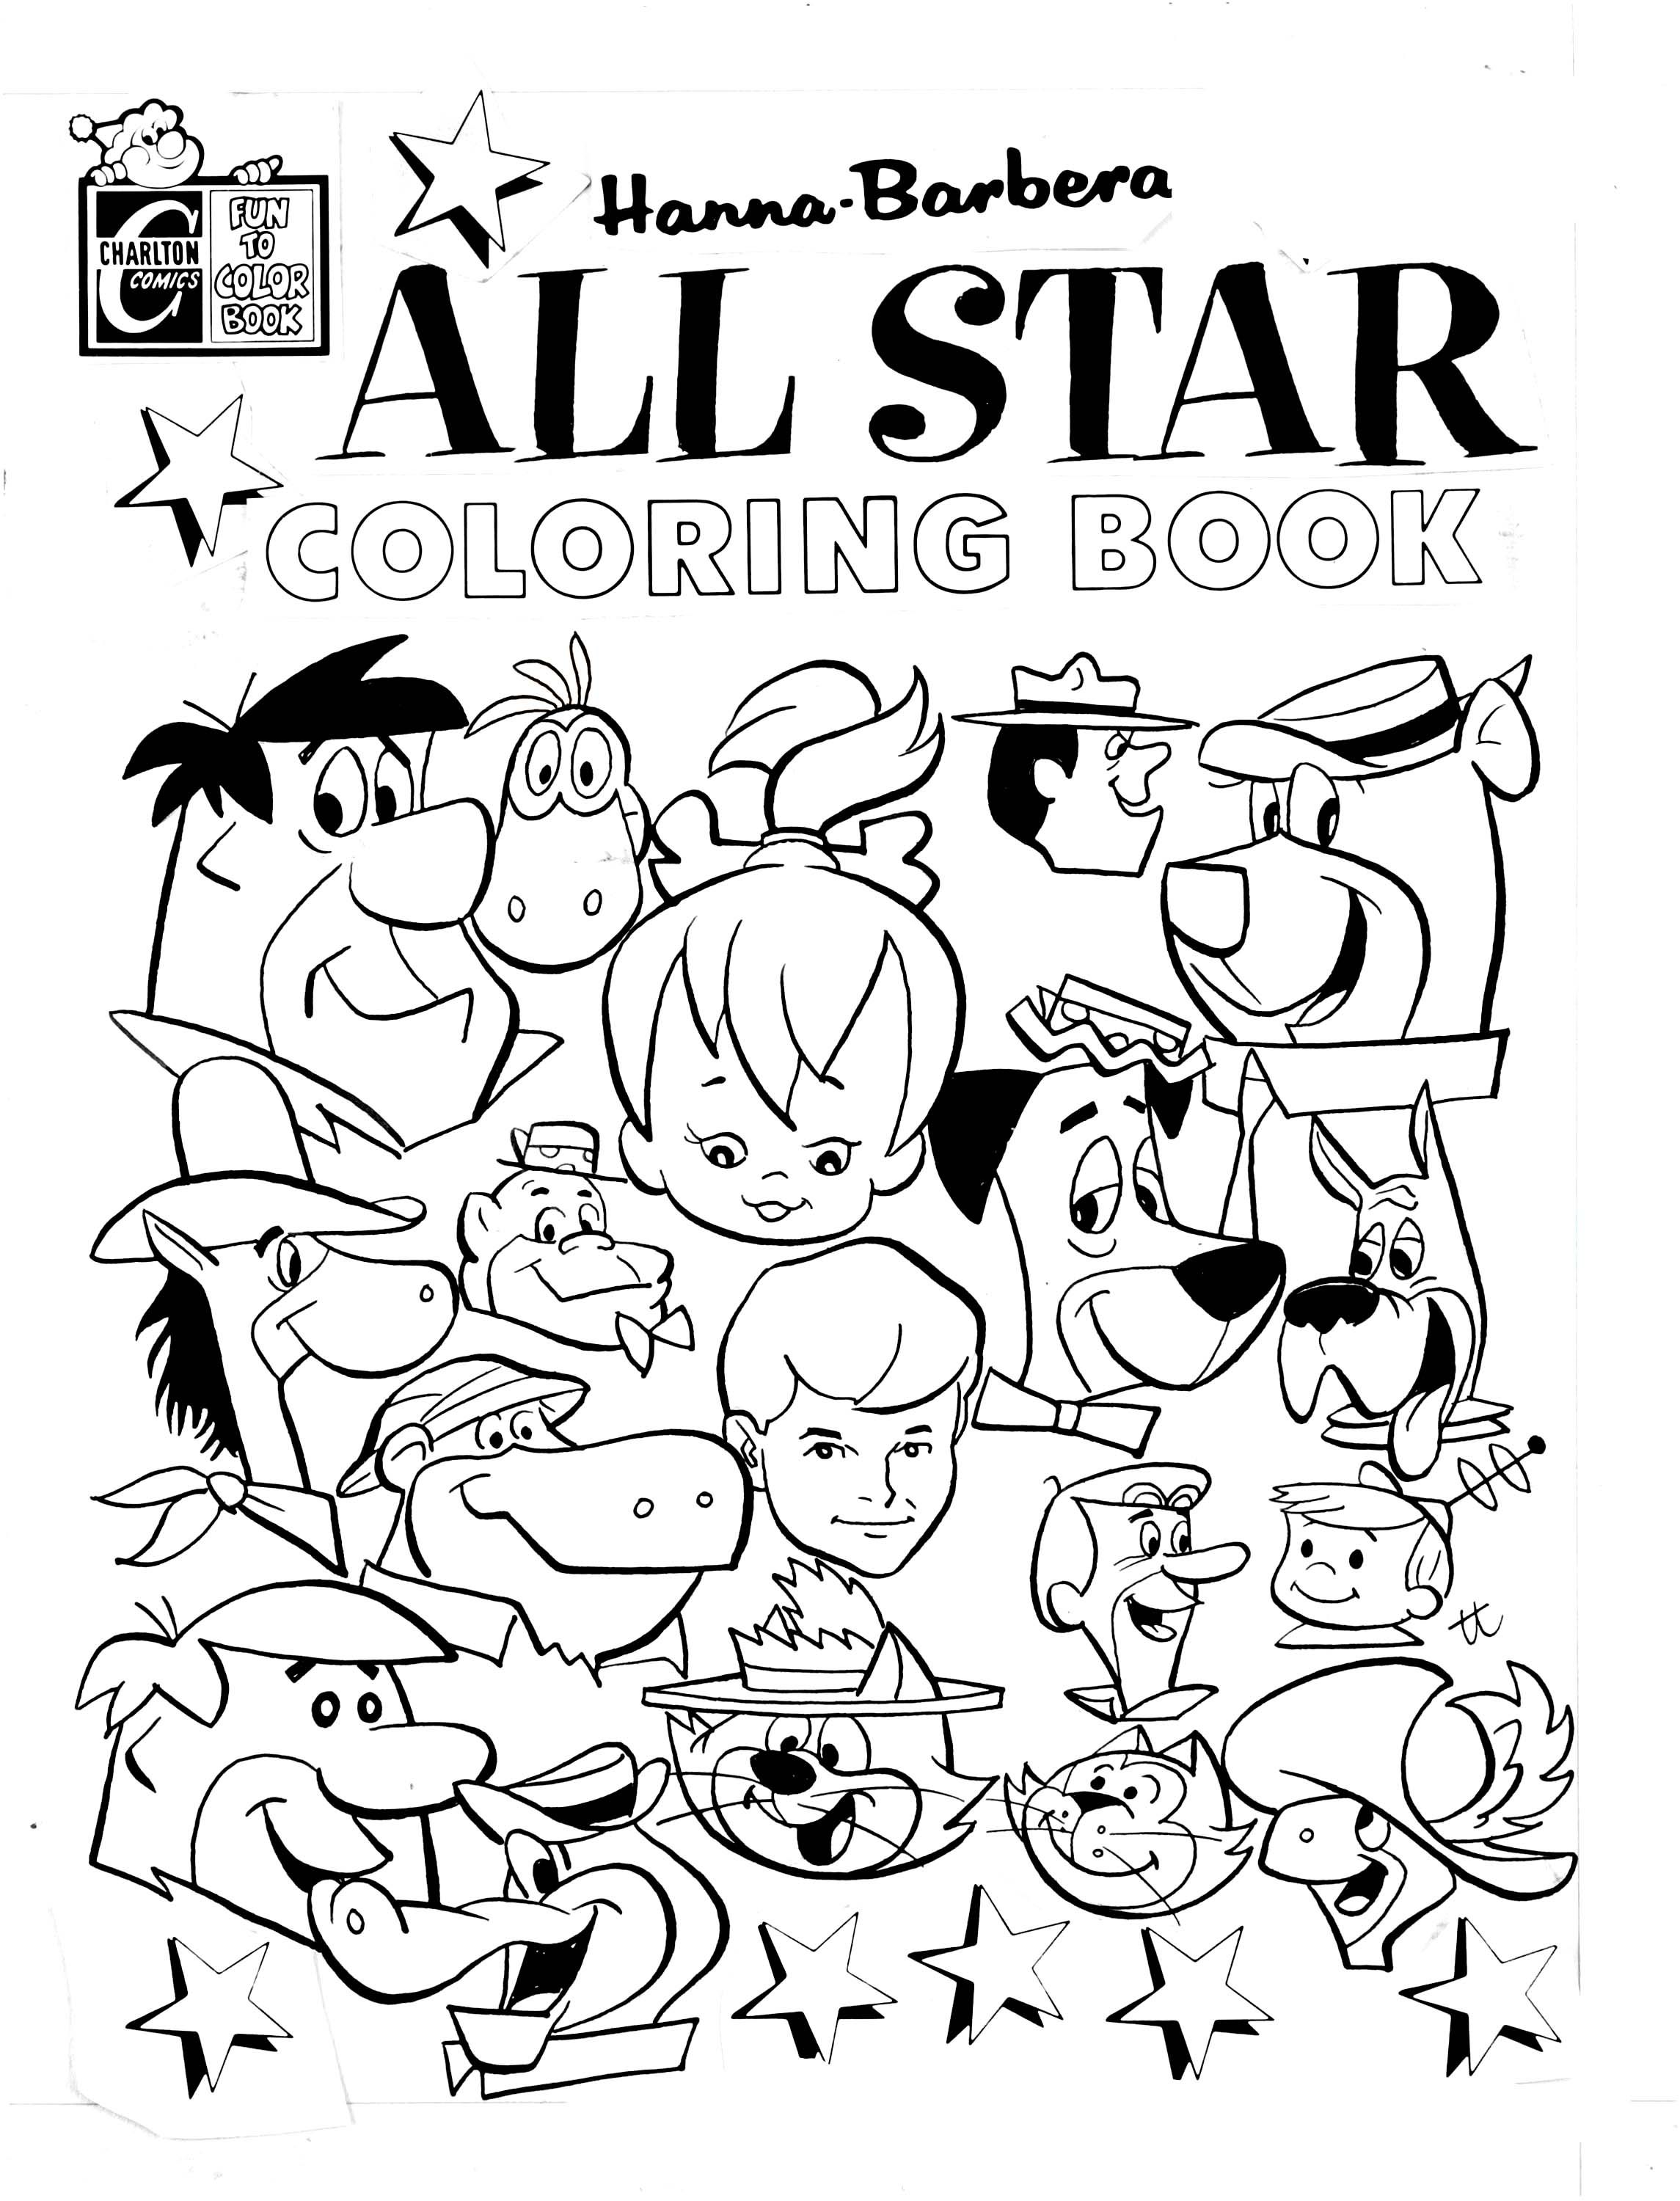 Vintage coloring books vintage childrens books cute coloring pages adult coloring pages